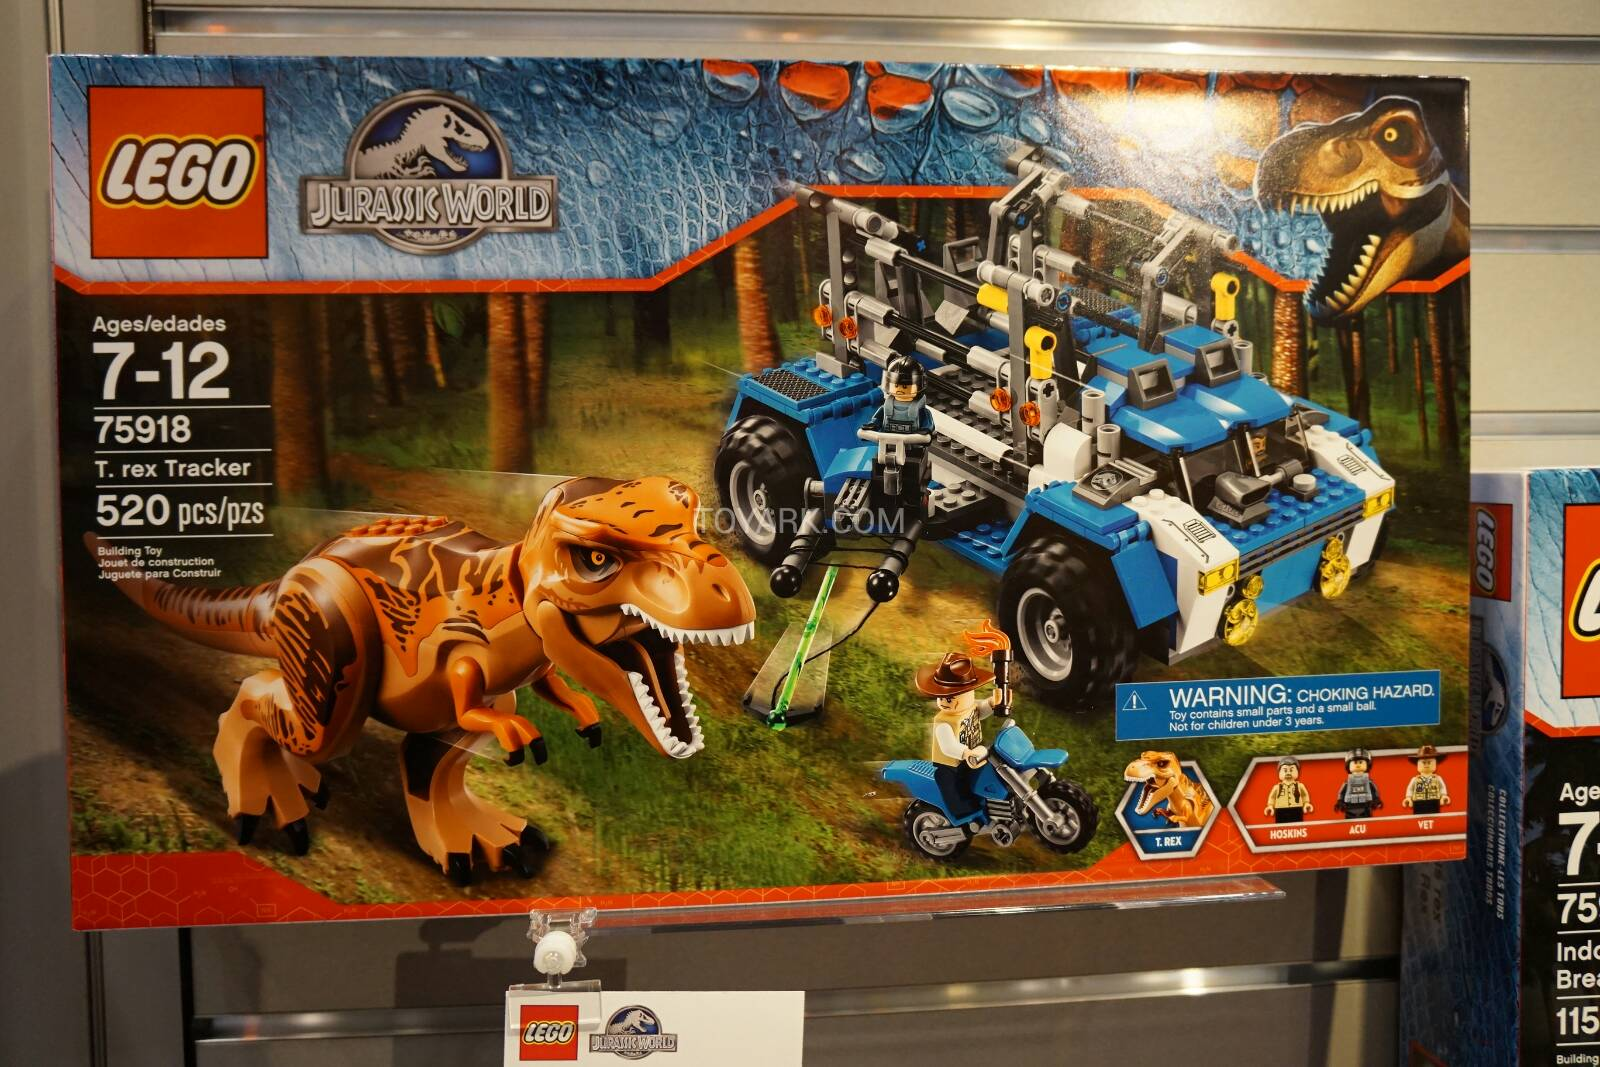 toys r us lego helicopter with Toy Fair 2015 Lego Jurassic World 015 on P900 besides Lego Helicarrier Avengers Shield Images as well Lego 2015 Red Creatures 31032 Set Revealed Photos Dragon also True Heroes Tank With Light And Sounds moreover P910.